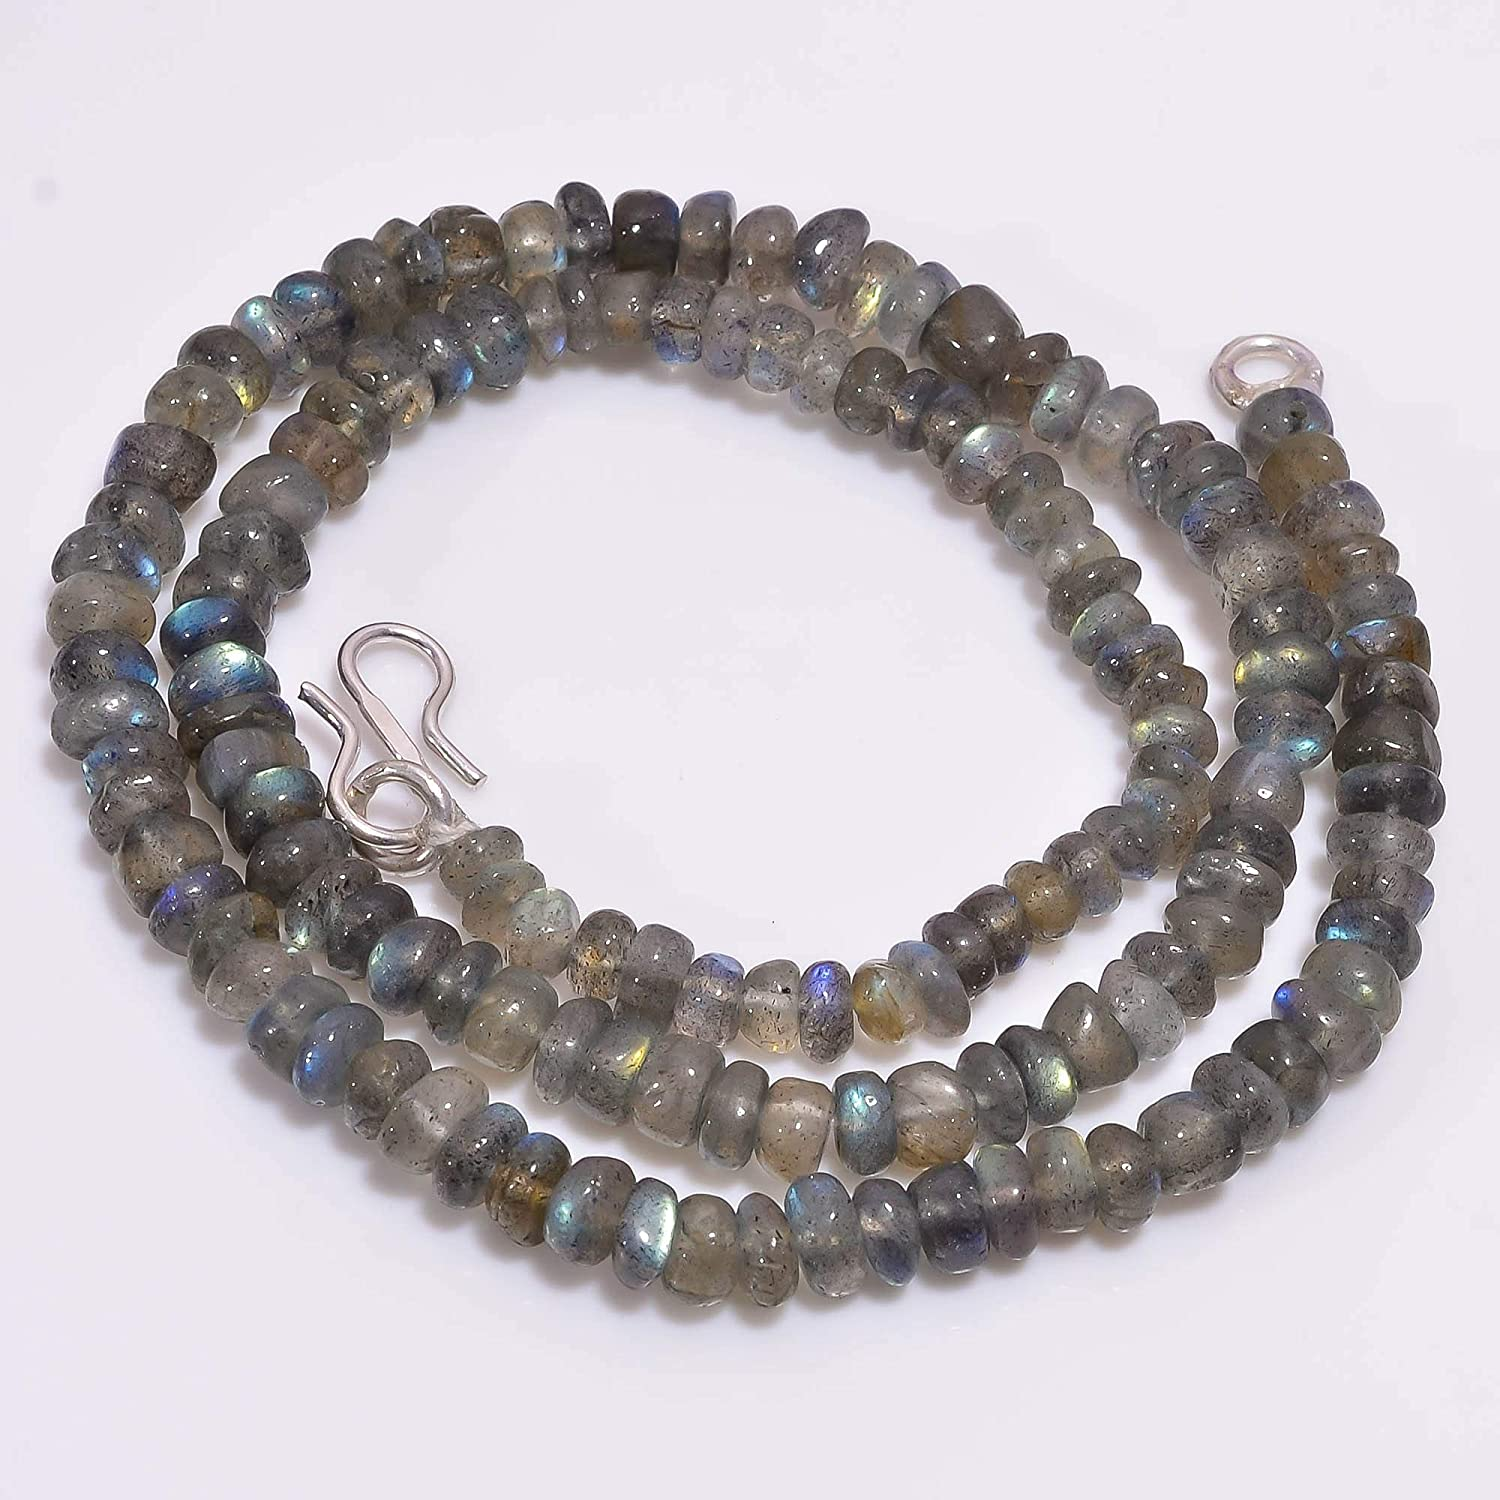 Unique Beads Natural Labradorite Gemstone Rondelle Smooth Beads Necklace 5-6 mm 18